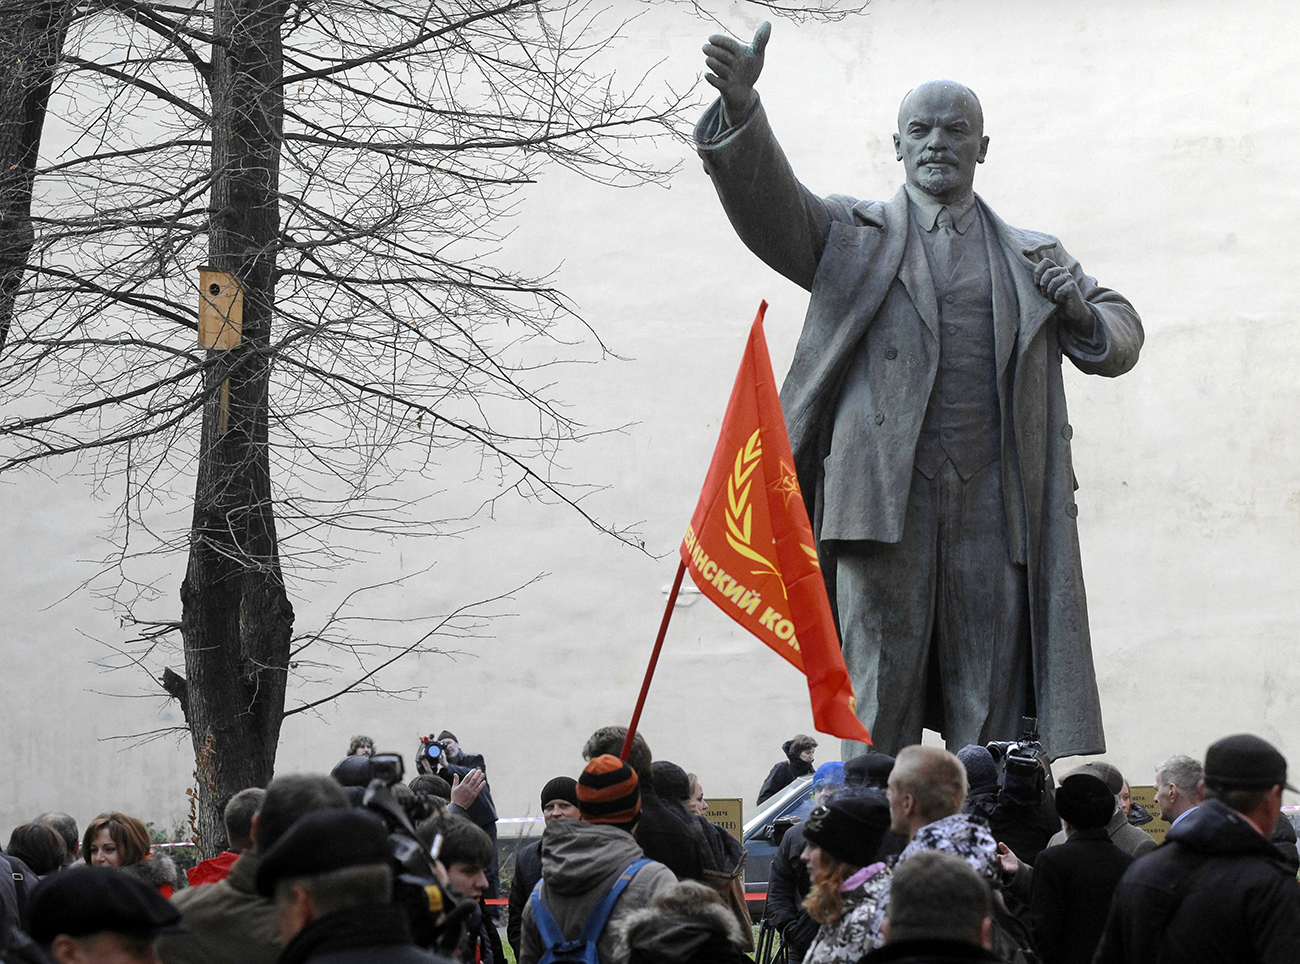 In 2017, about a quarter of respondents believe no one will ever try to follow in Lenin's footsteps again.